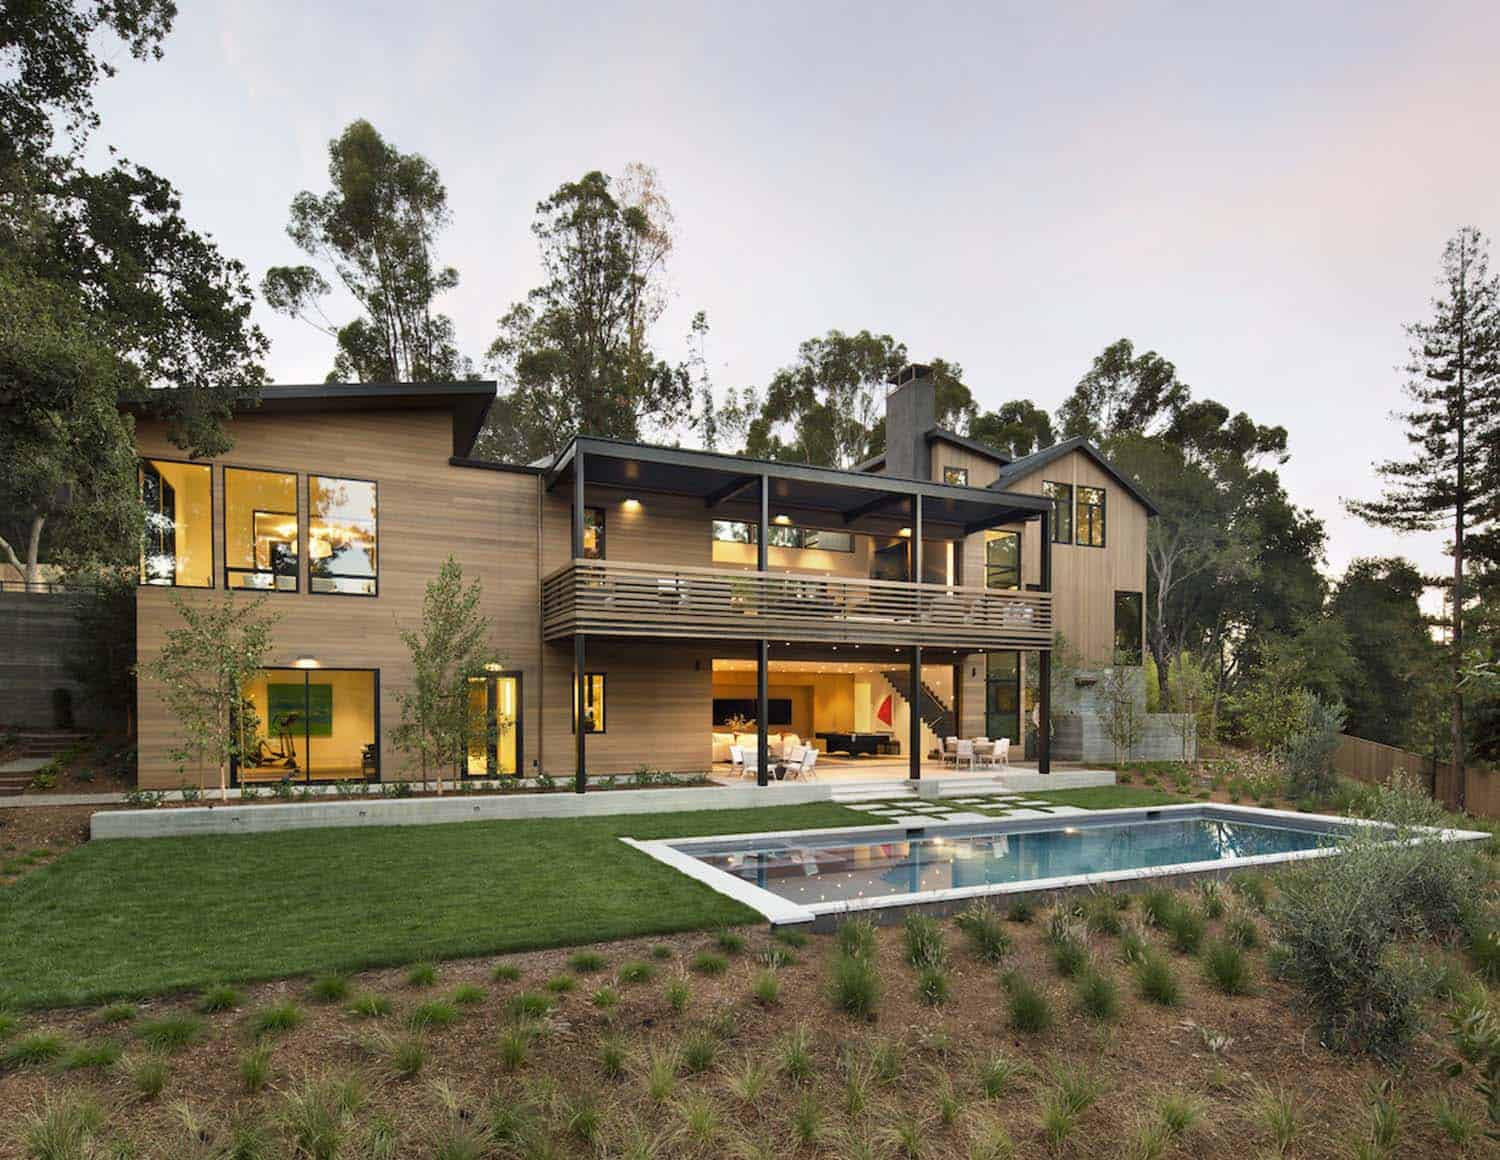 Contemporary Home Design-Butler Armsden Architects-19-1 Kindesign